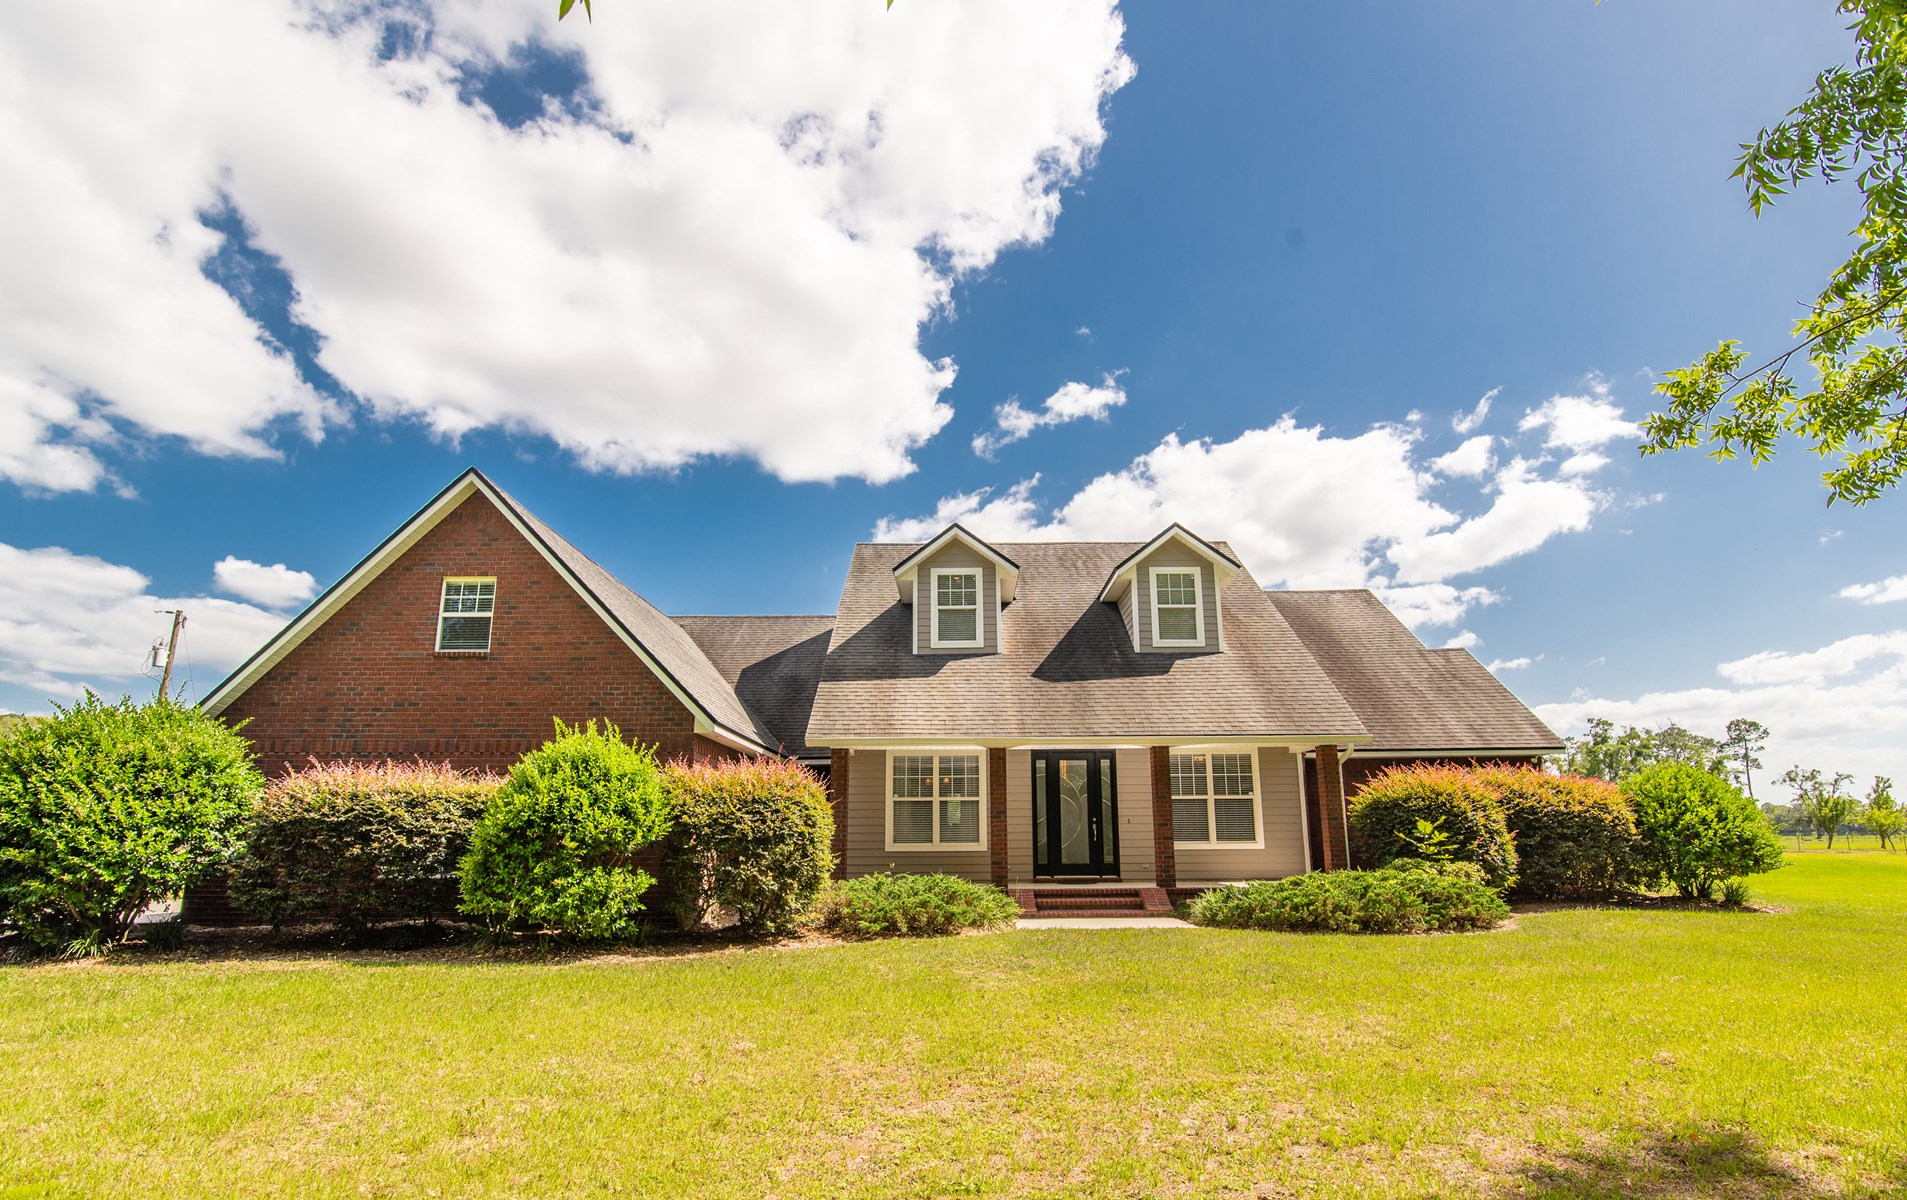 SPECTACULAR 4 BR/3.5 BA ON 5 ACRES IN NORTH CENTRAL FL